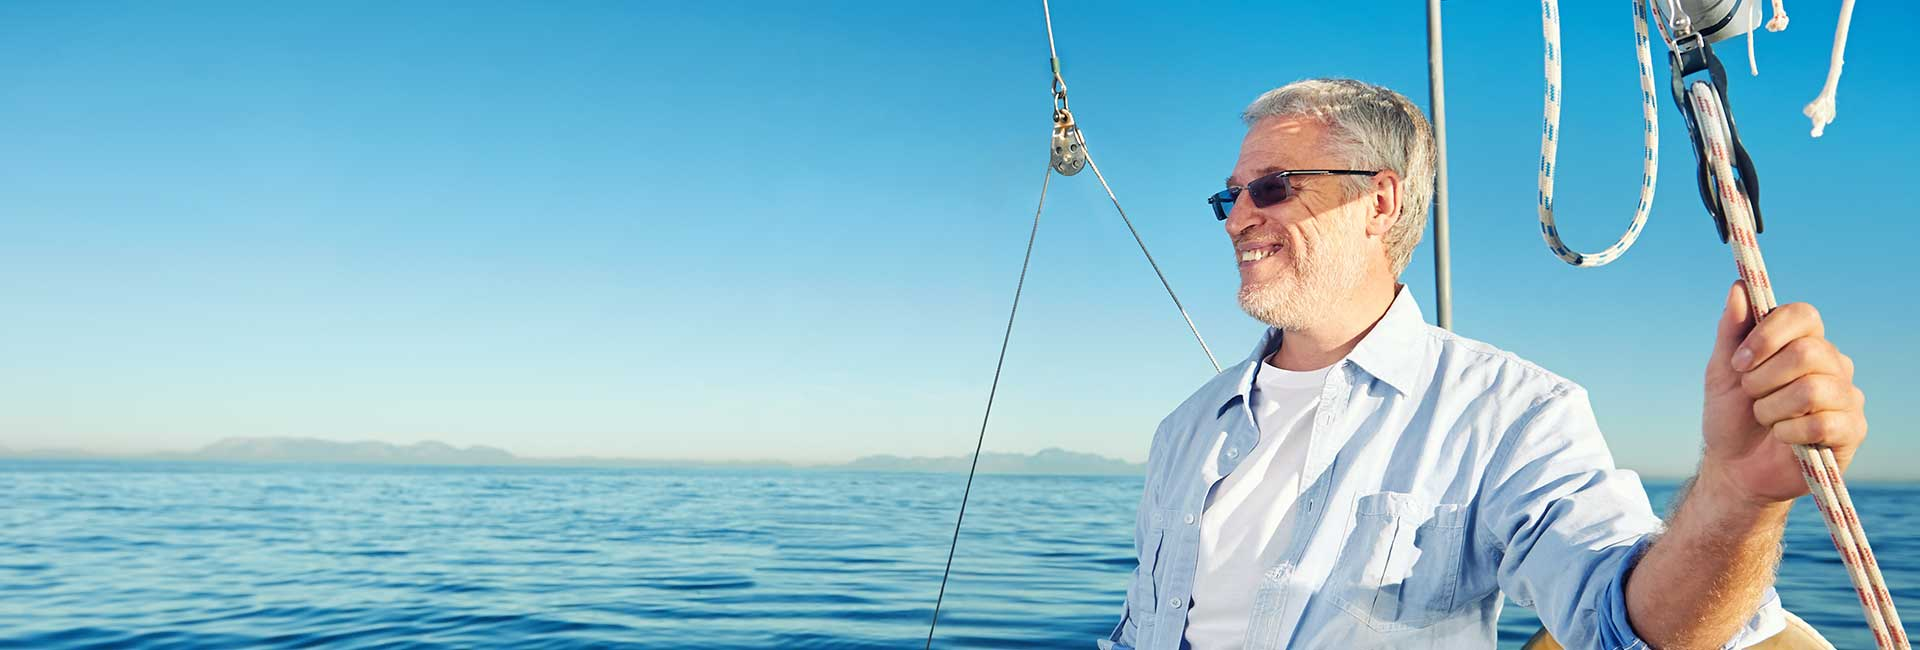 Man sailing on a yacht